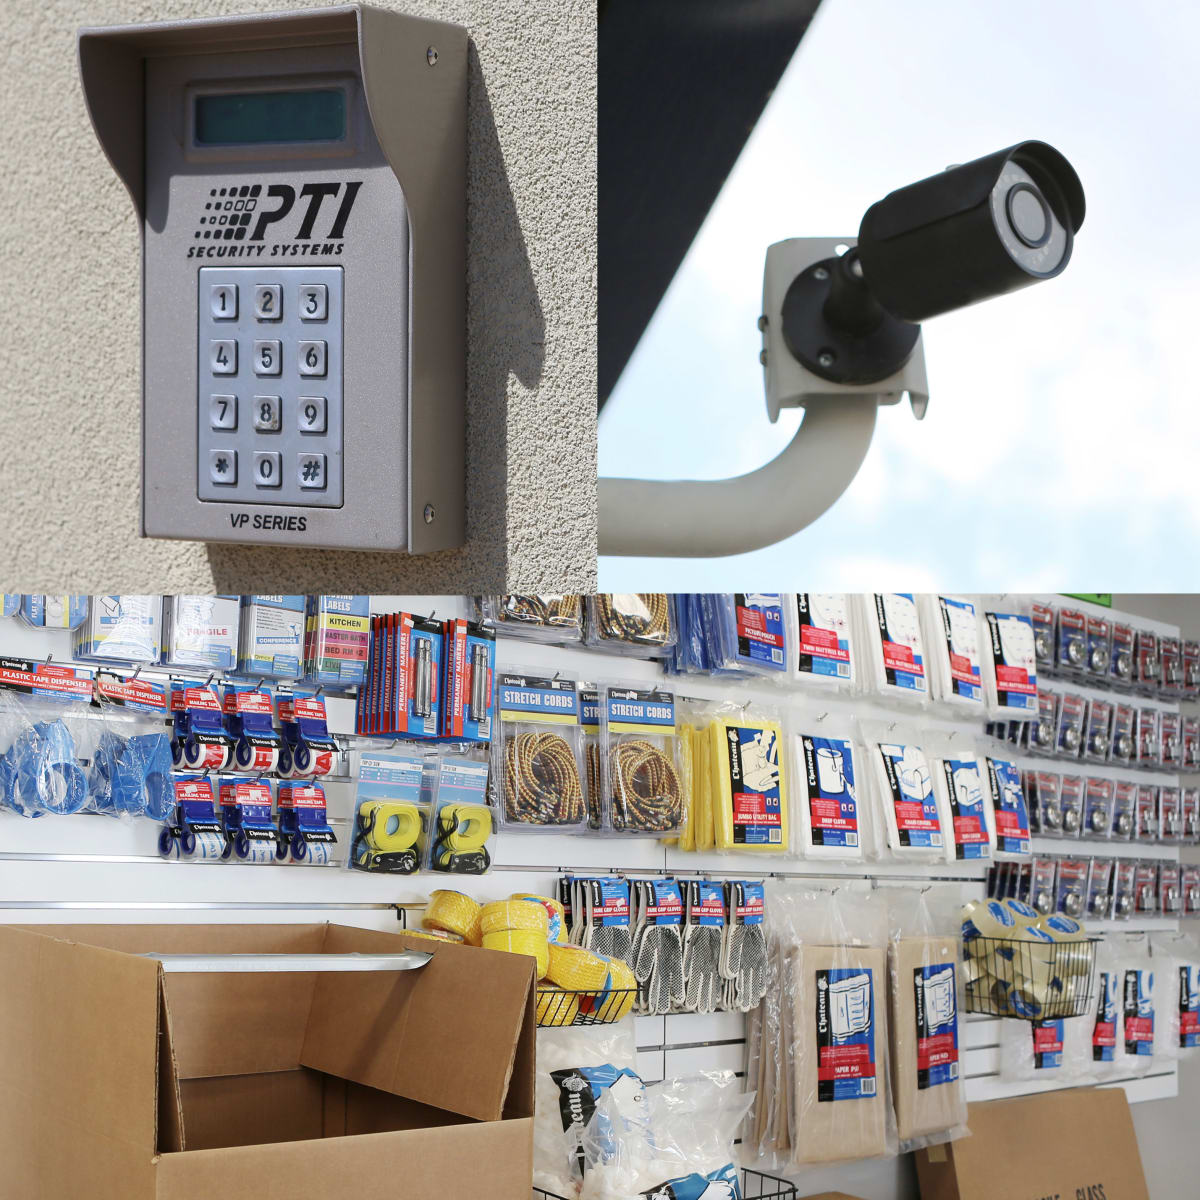 We provide 24 hour security monitoring and sell various moving and packing supplies at Midgard Self Storage in Tanner, Alabama